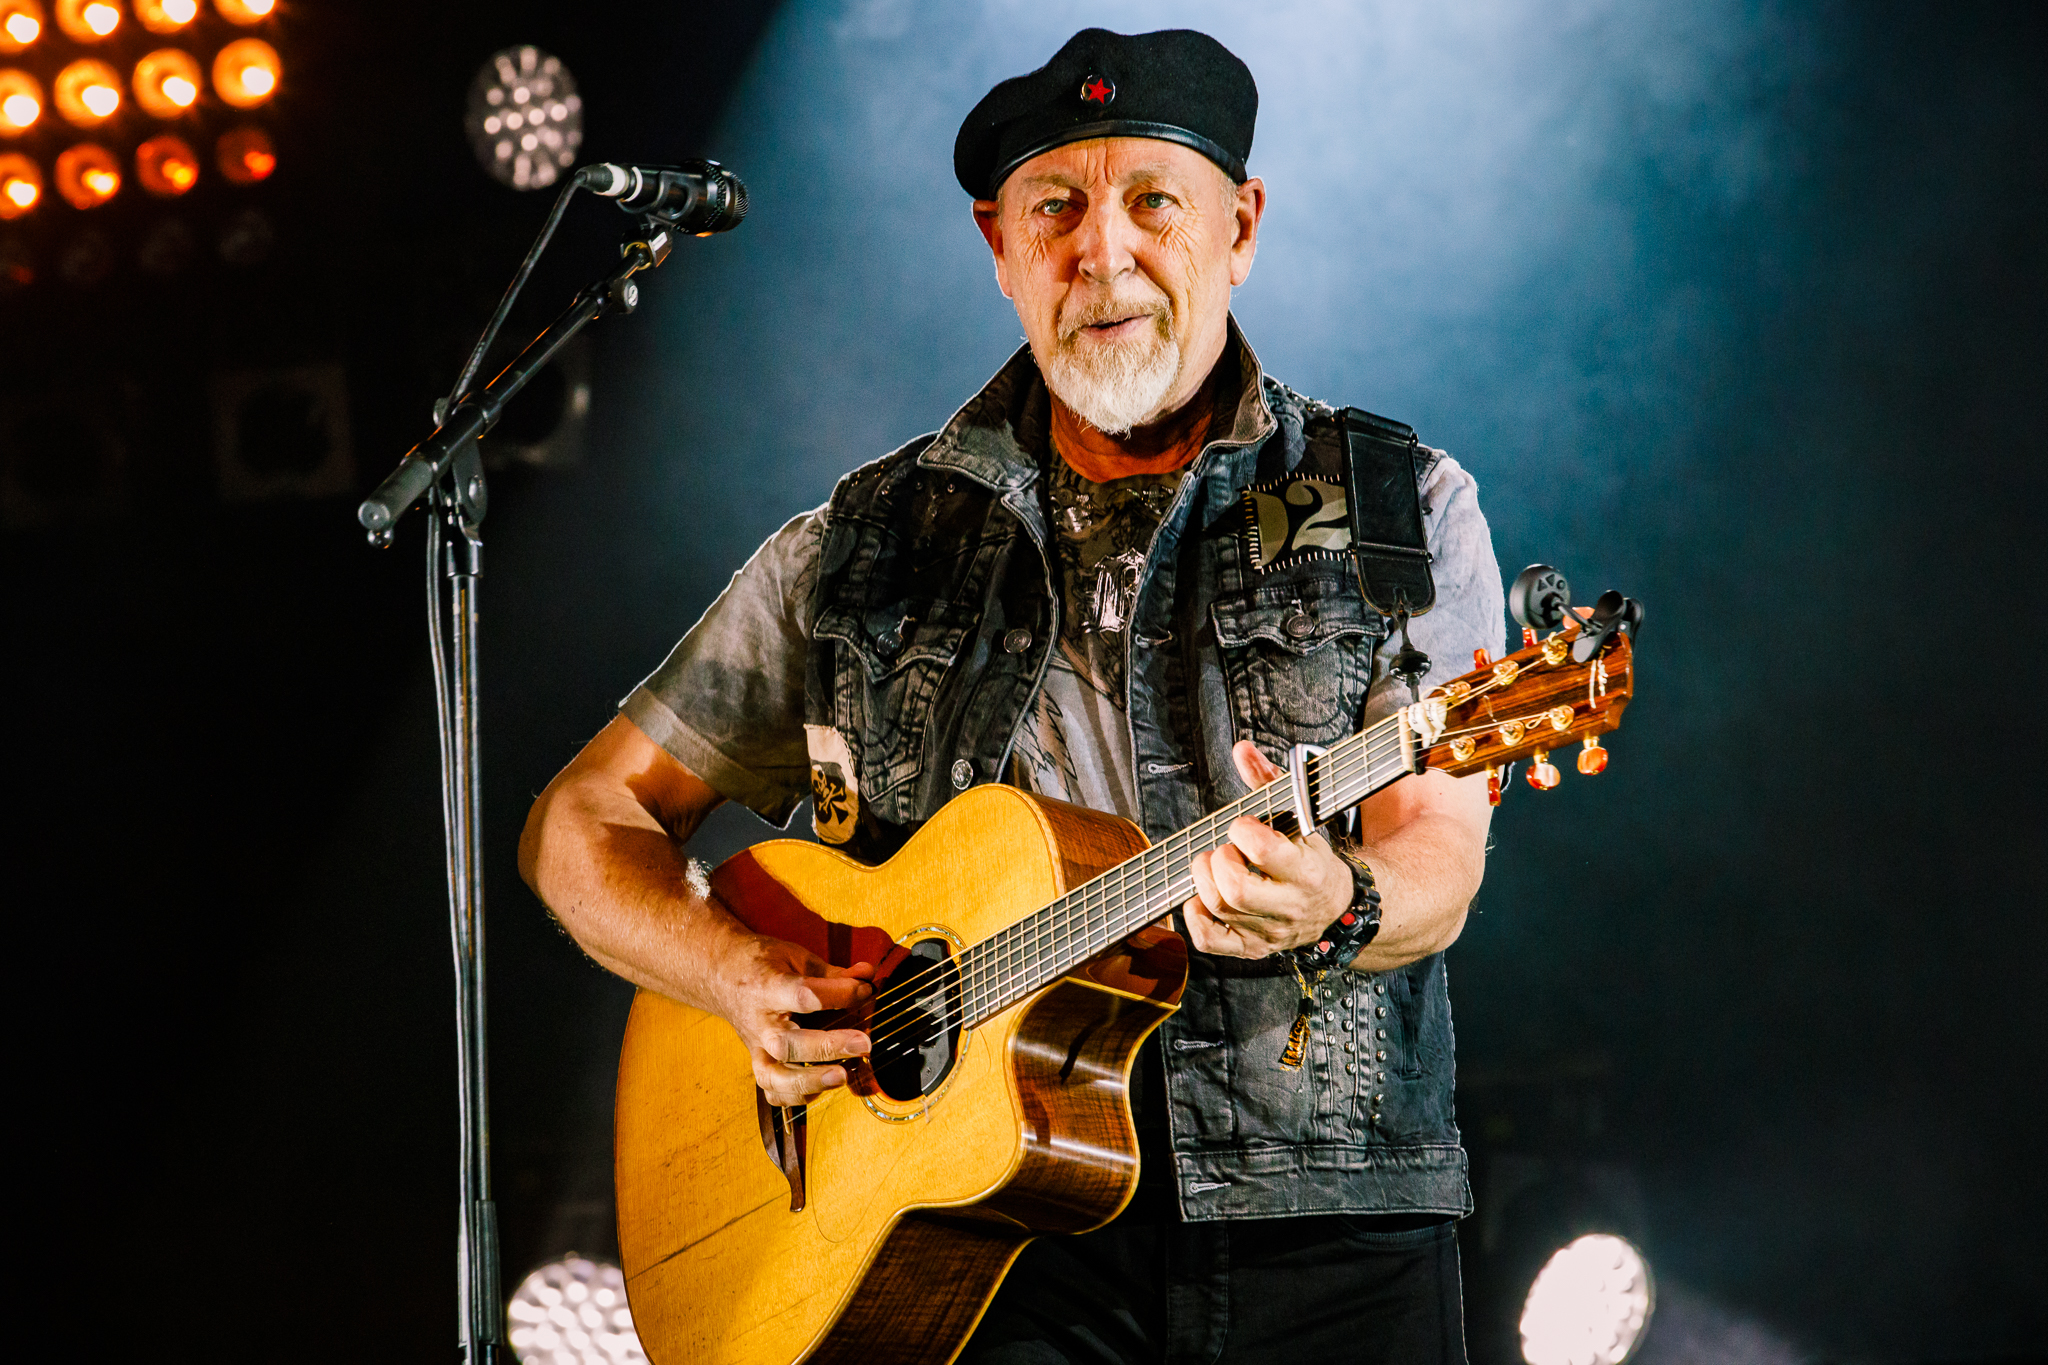 Richard Thompson @ Fairport's Cropredy Convention (Cropredy, England)